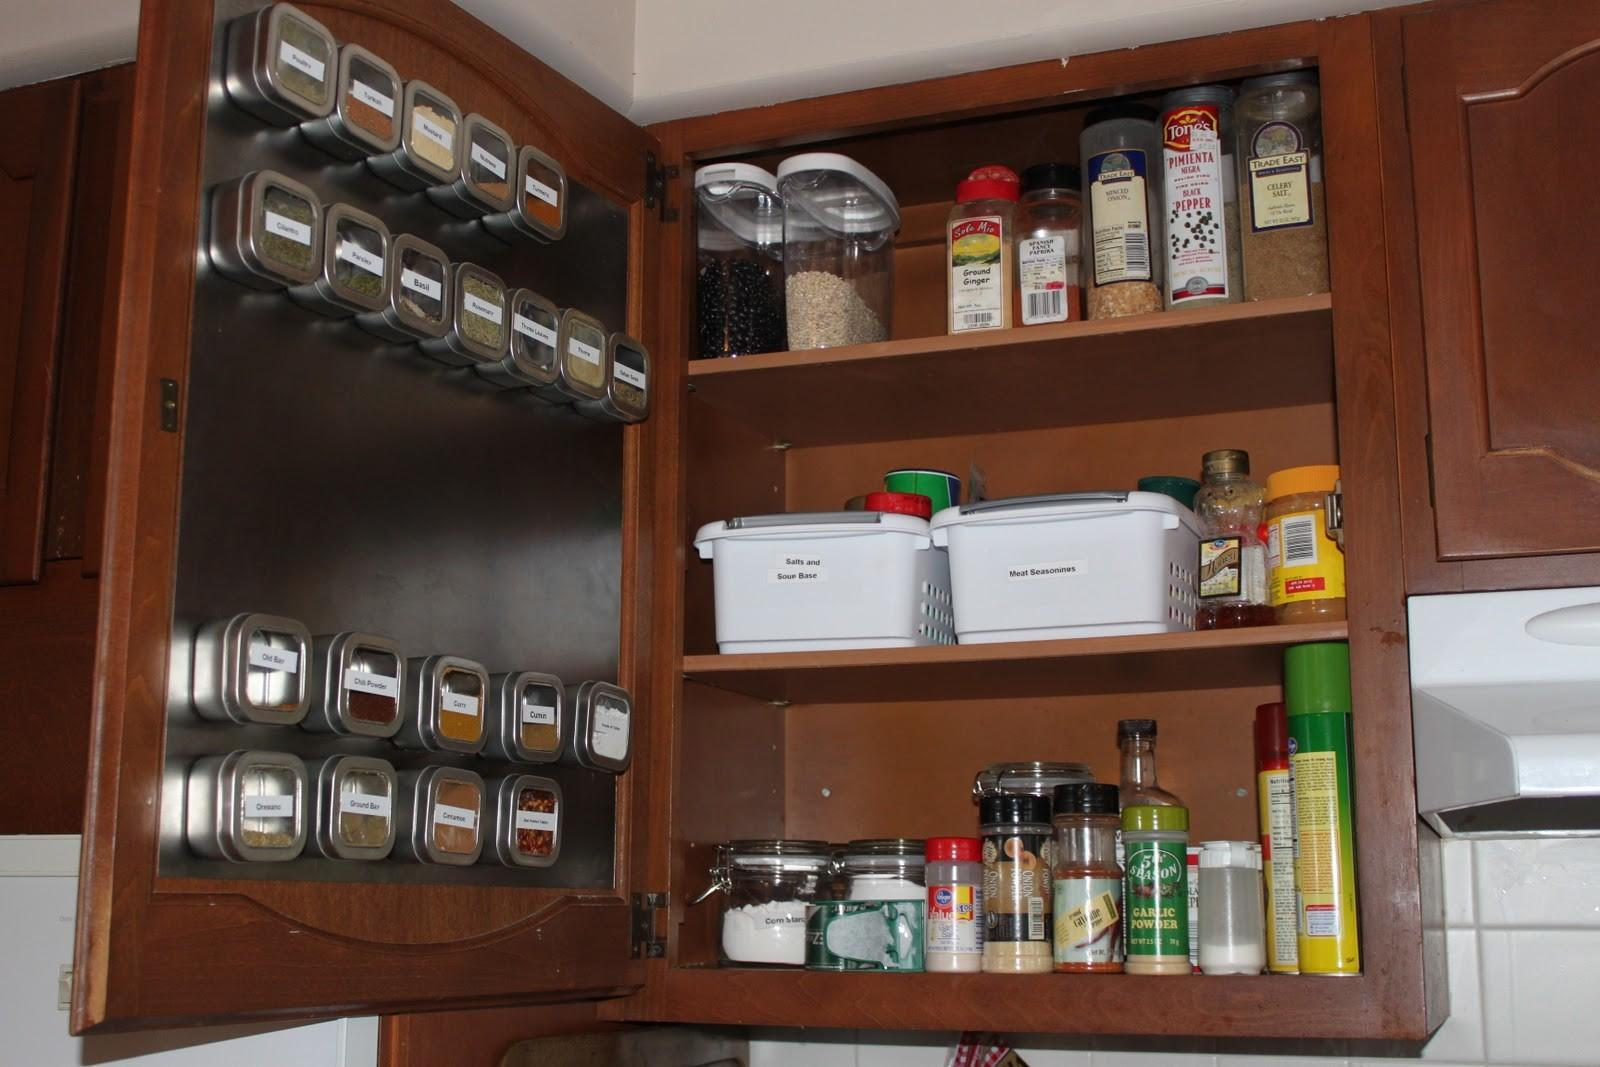 Spice Cabinet Becoming More Domestic